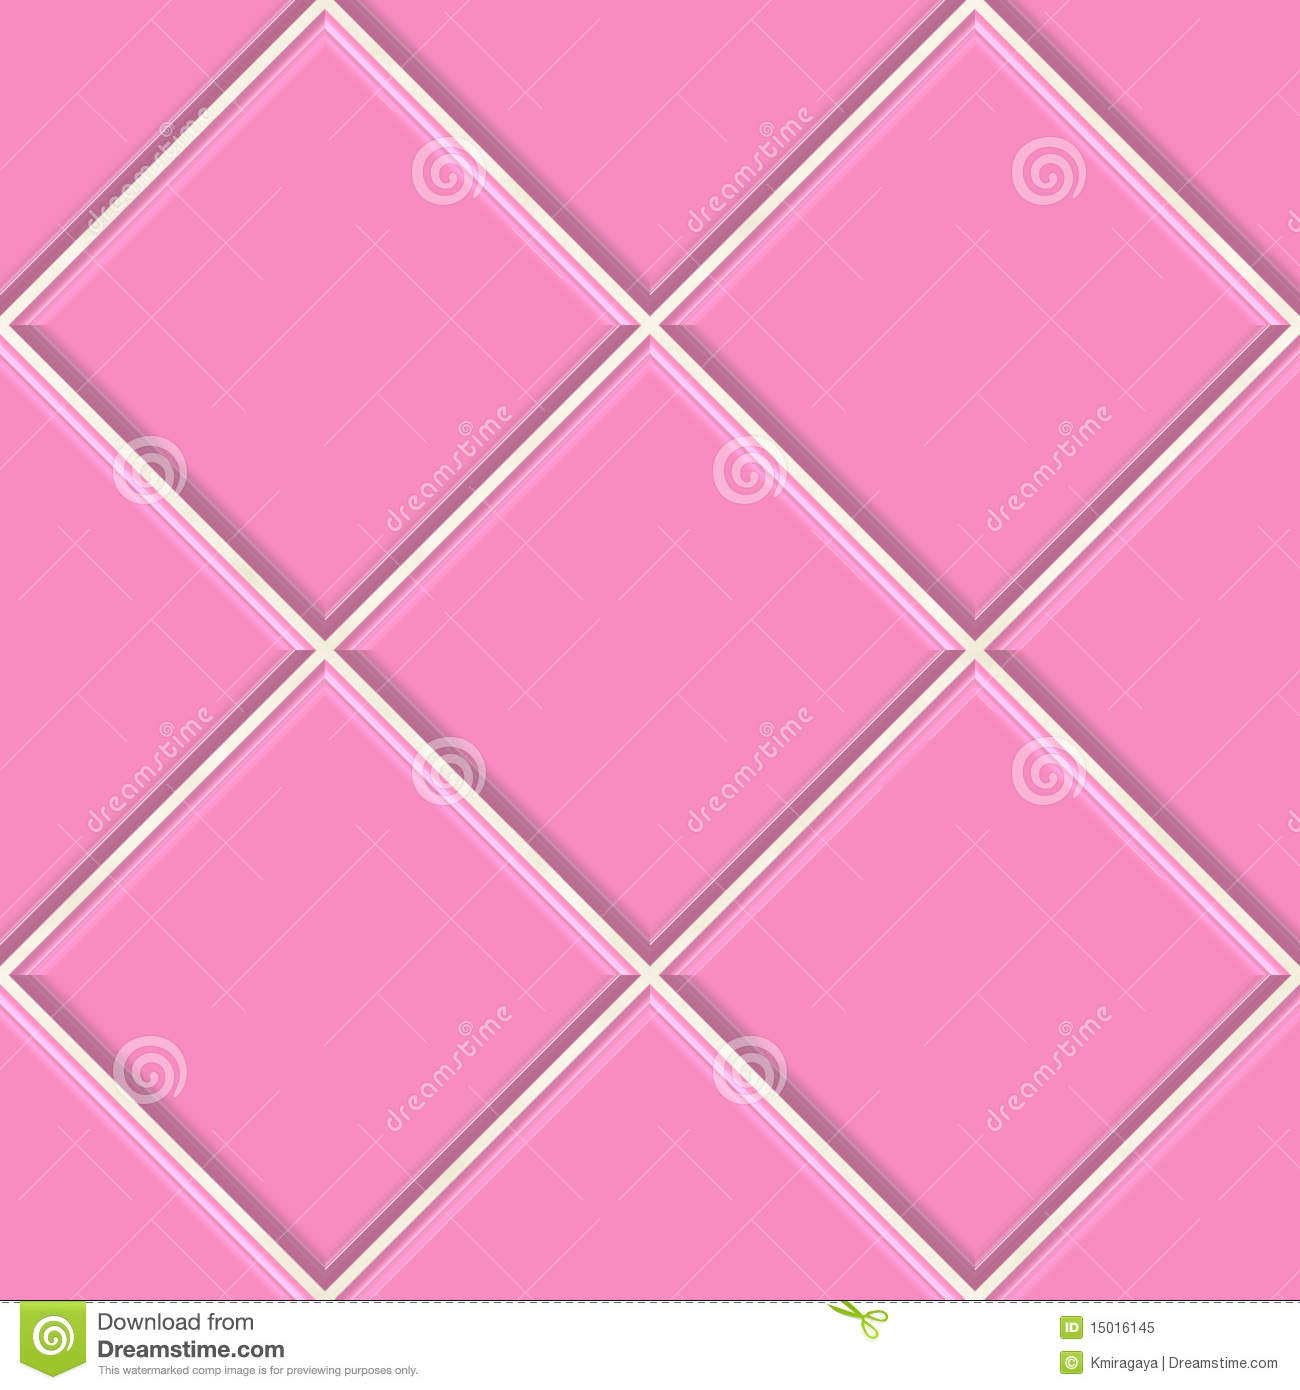 Royalty Free Stock Photo. Download Seamless Pink Tiles ...